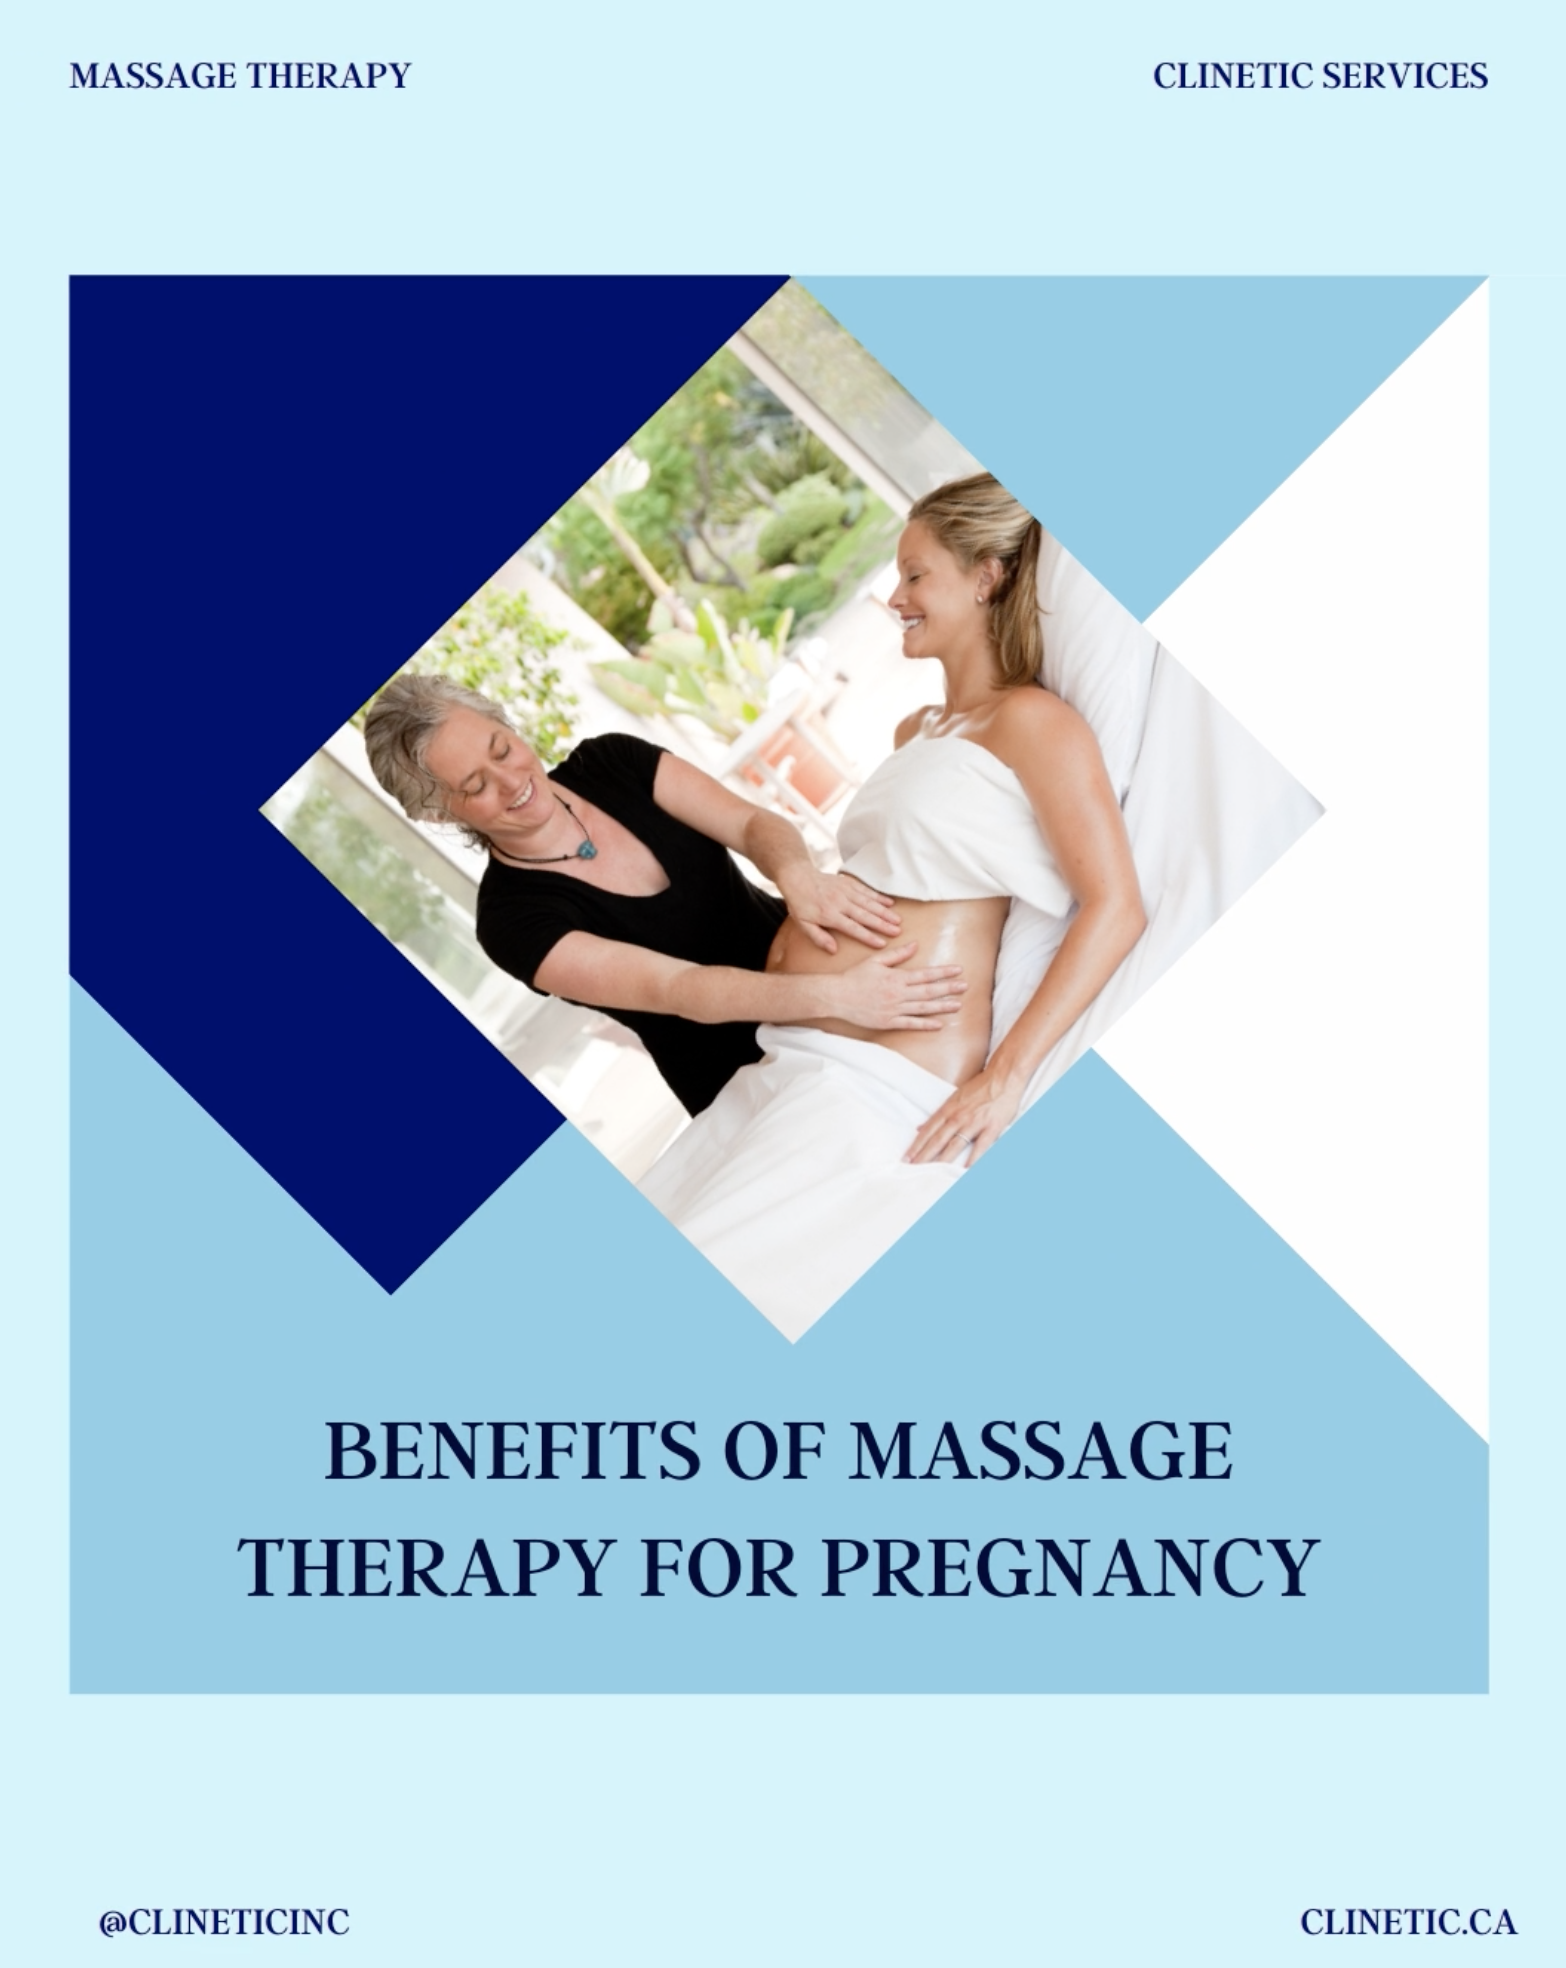 Benefits of Massage Therapy for Pregnancy